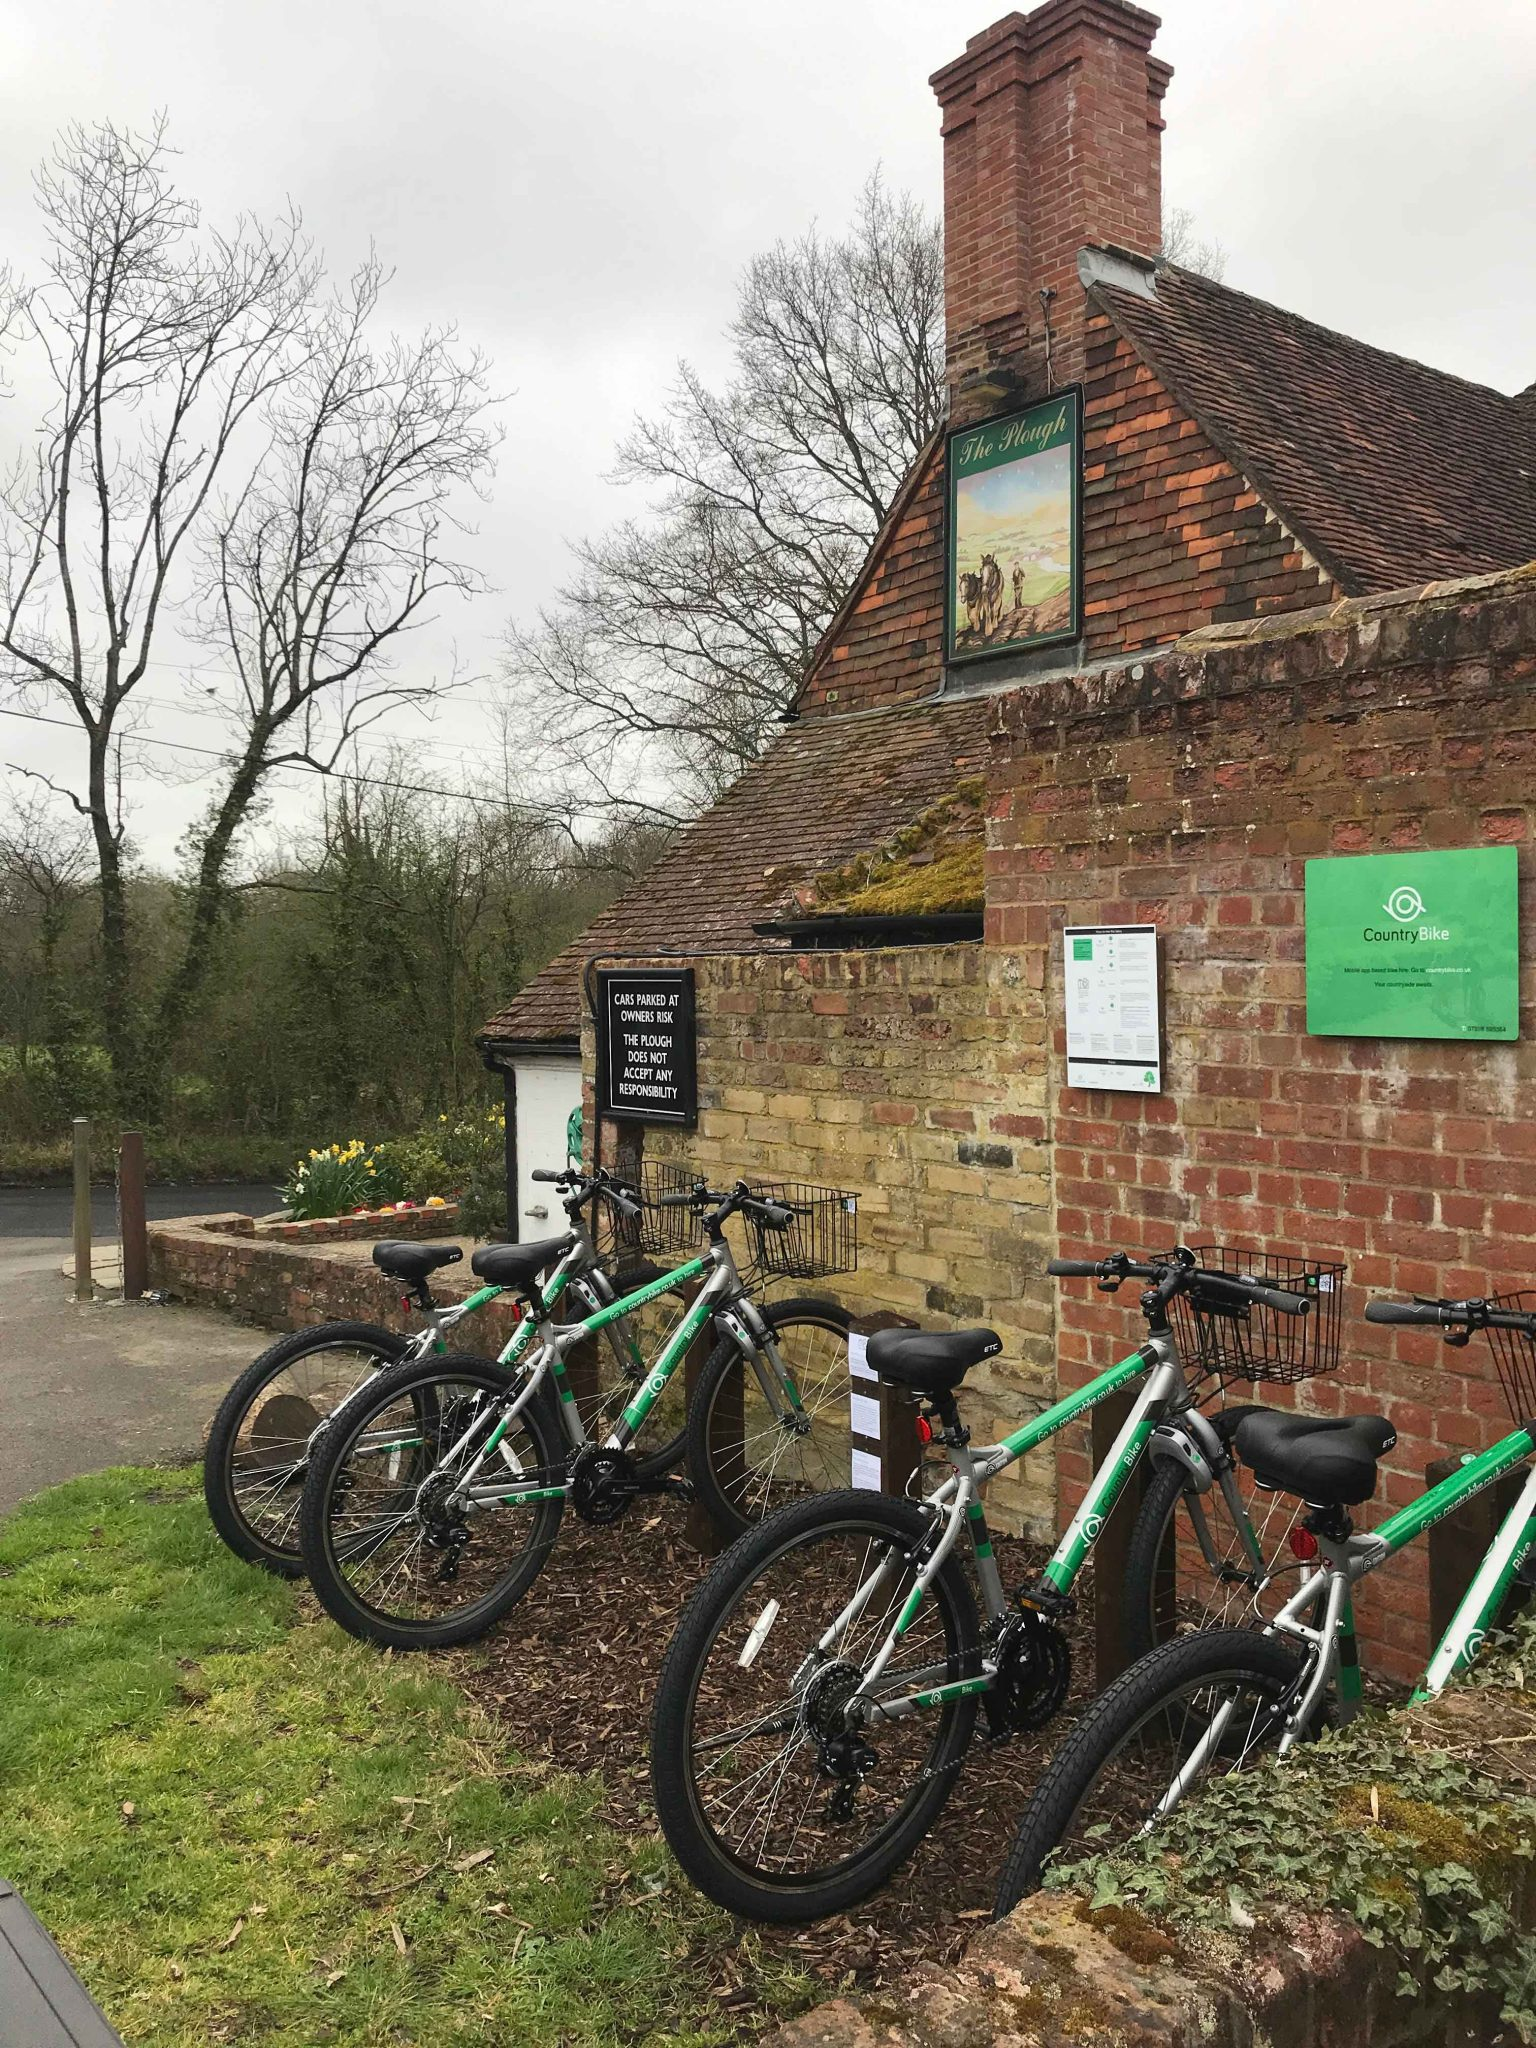 Image of bikes at the Plough